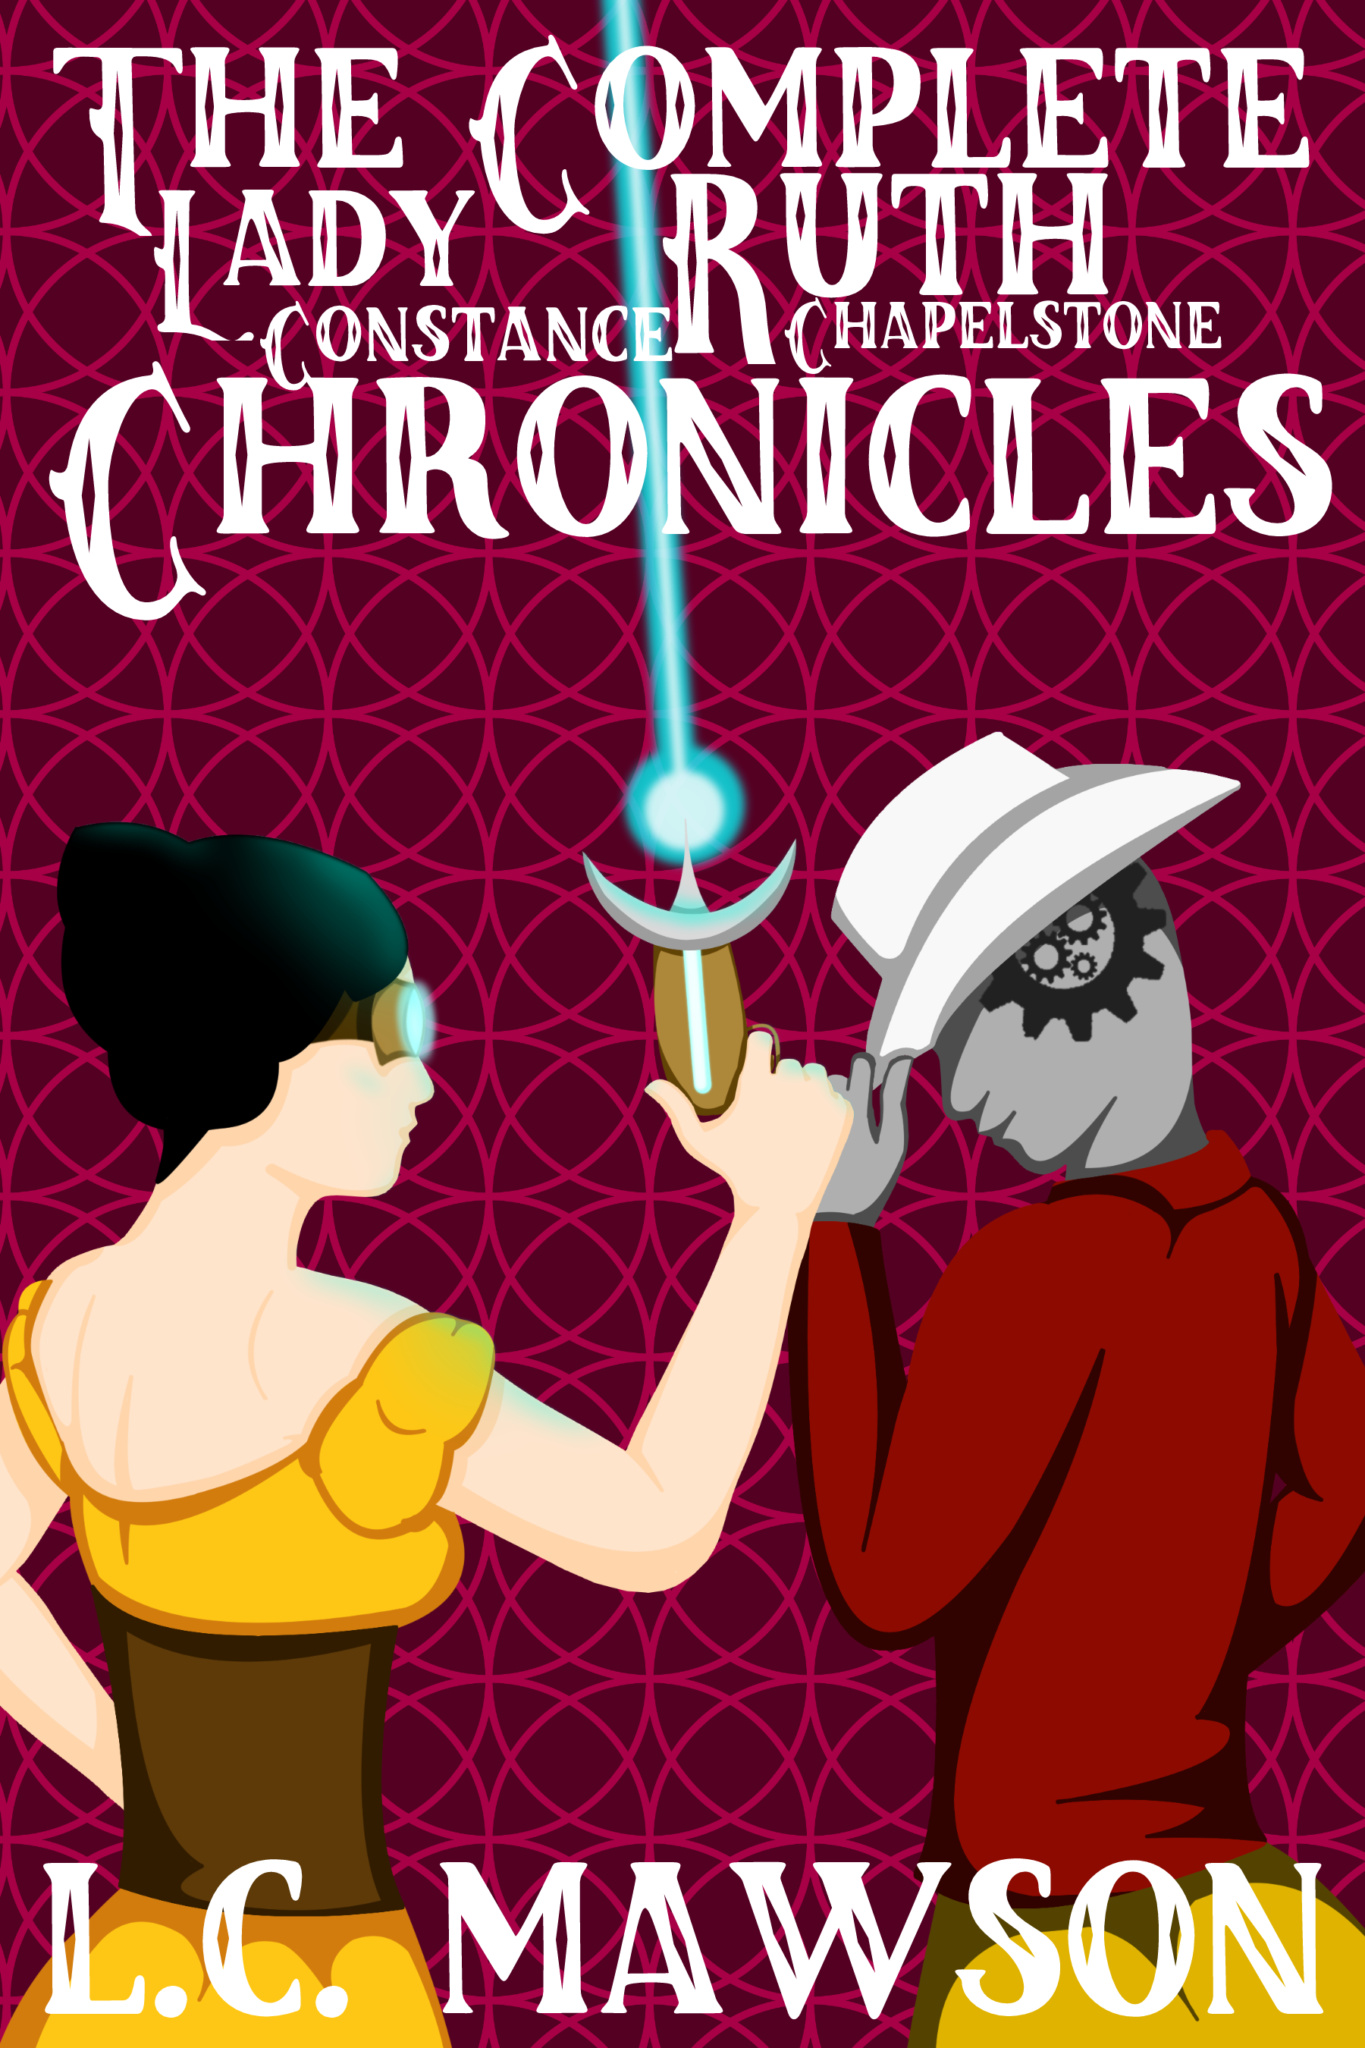 The Lady Ruth Constance Chapelstone Chronicles